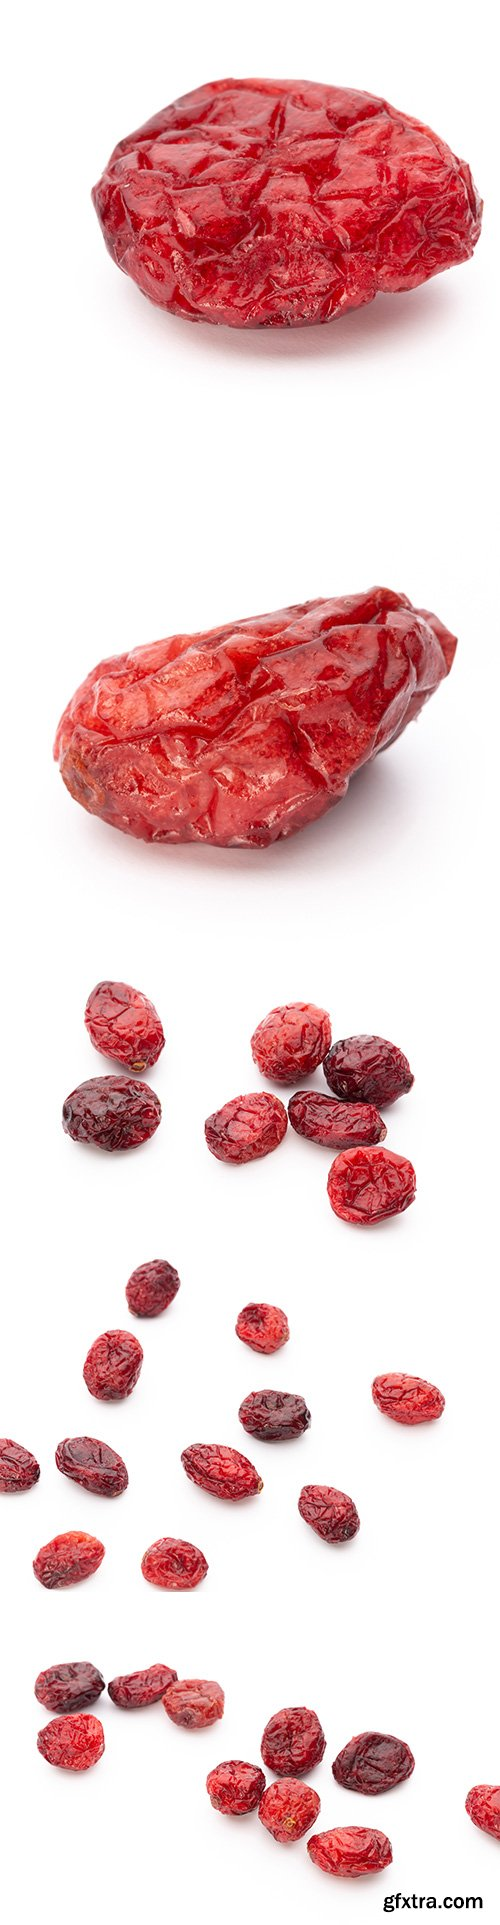 Dried Cranberries Isolated - 5xJPGs